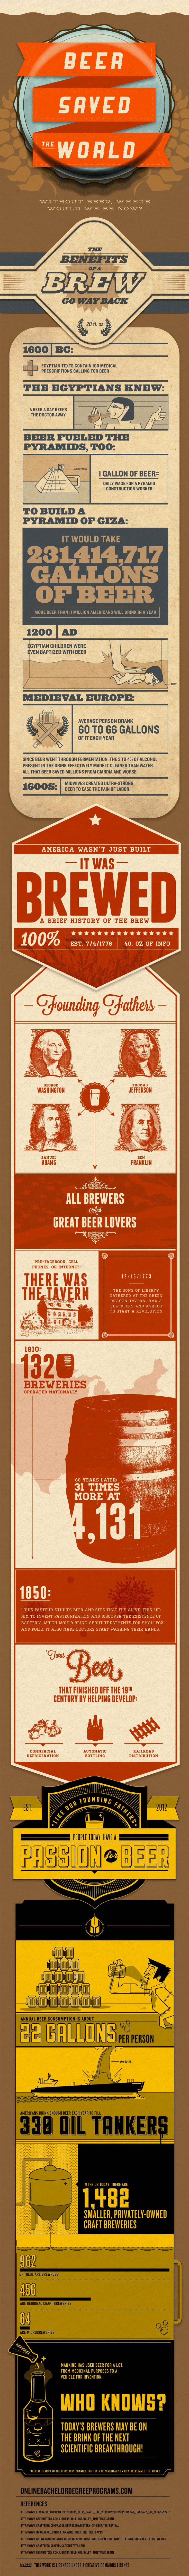 beer facts and how it saved the world infographic the beer saved the world